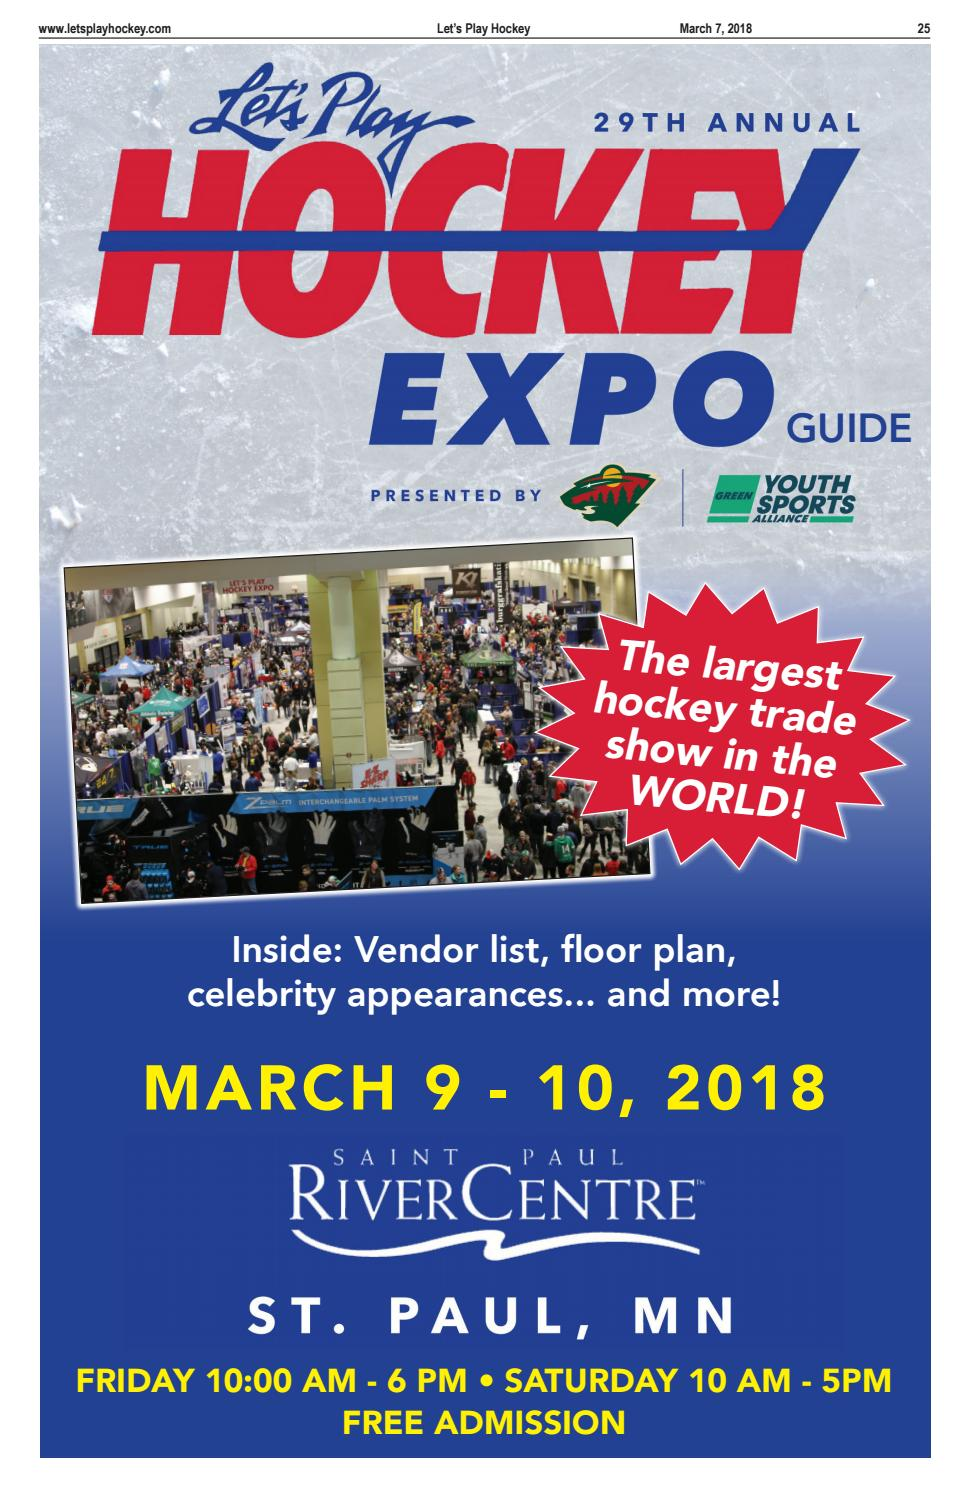 0b1eb091c57 2018 Let's Play Hockey Expo Guide by Let's Play Hockey - issuu